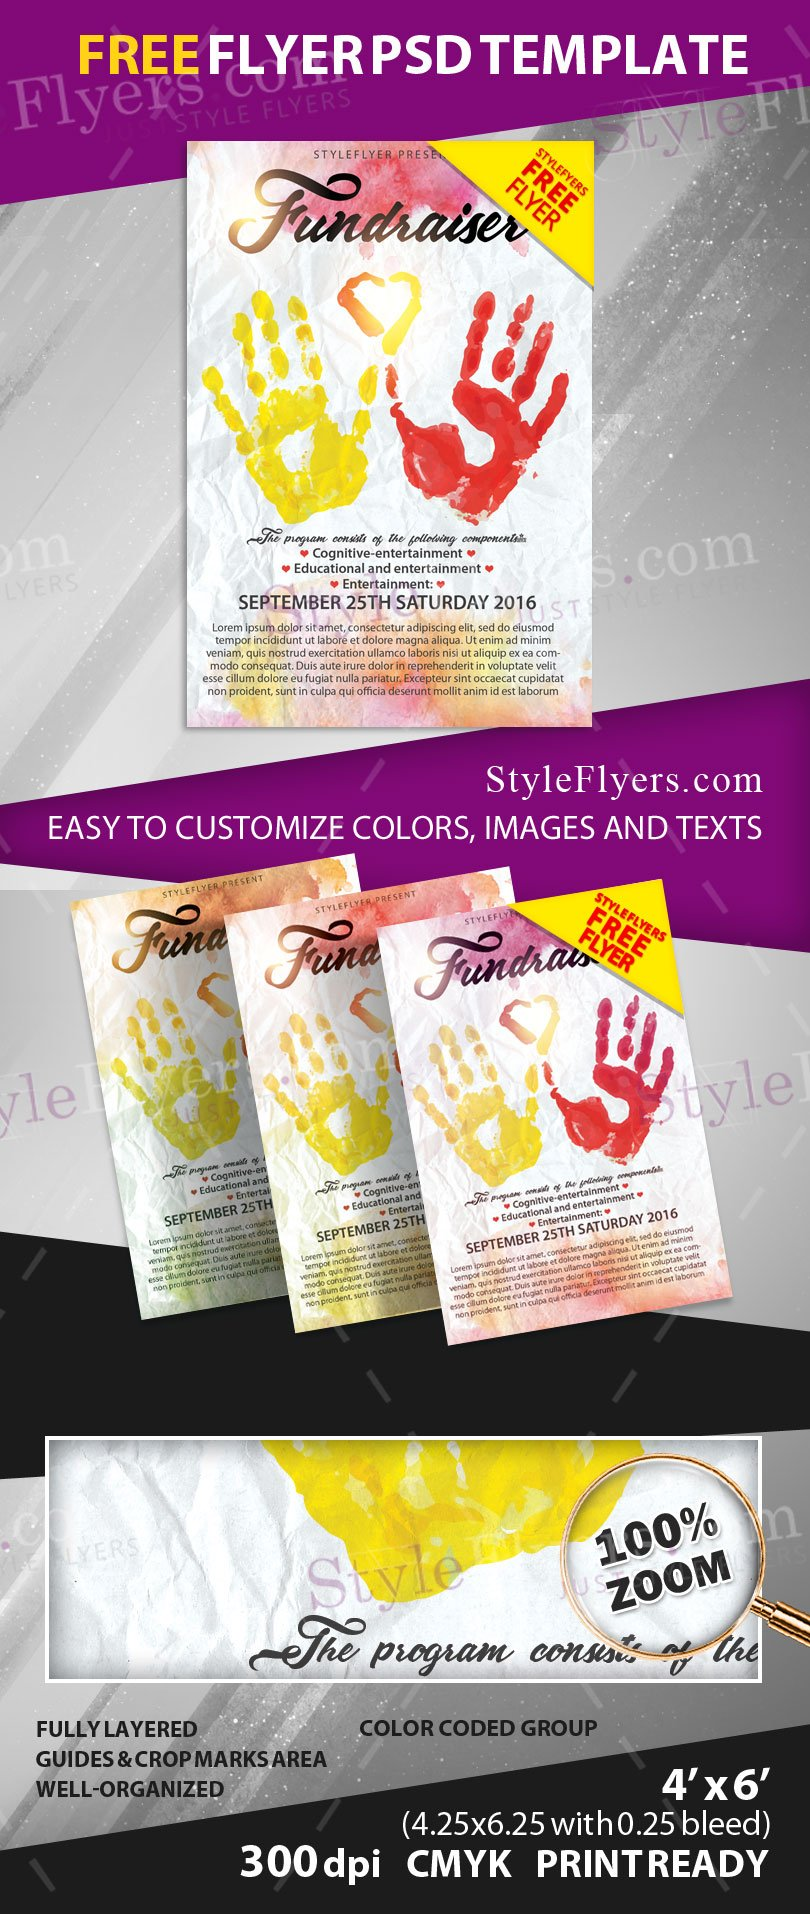 fundraiser free psd flyer template free download  11453